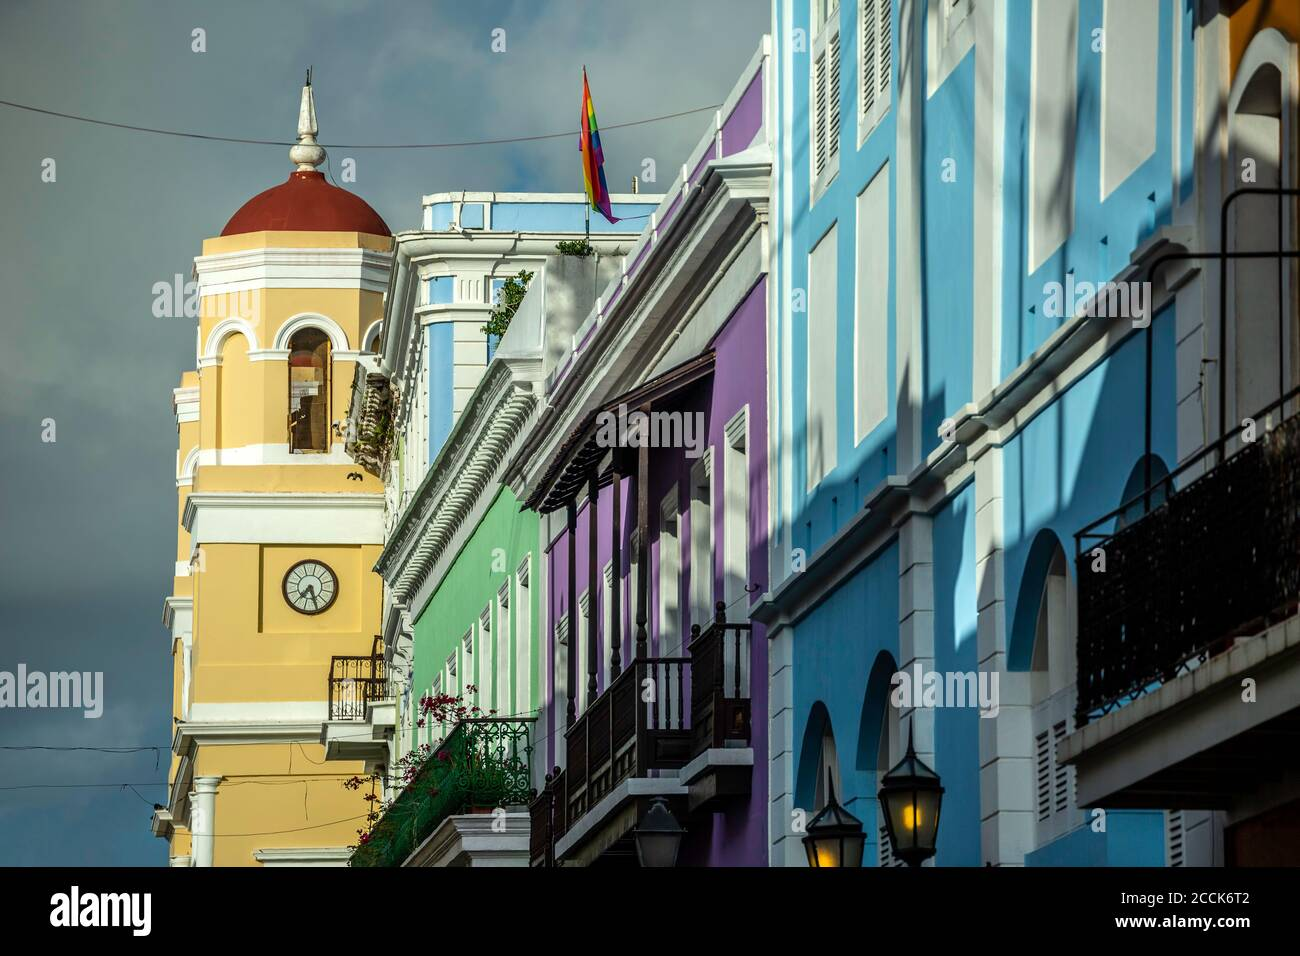 City Hall bell tower and colorful Spanish Colonial buildings, San Francisco St., Old San Juan, Puerto Rico Stock Photo